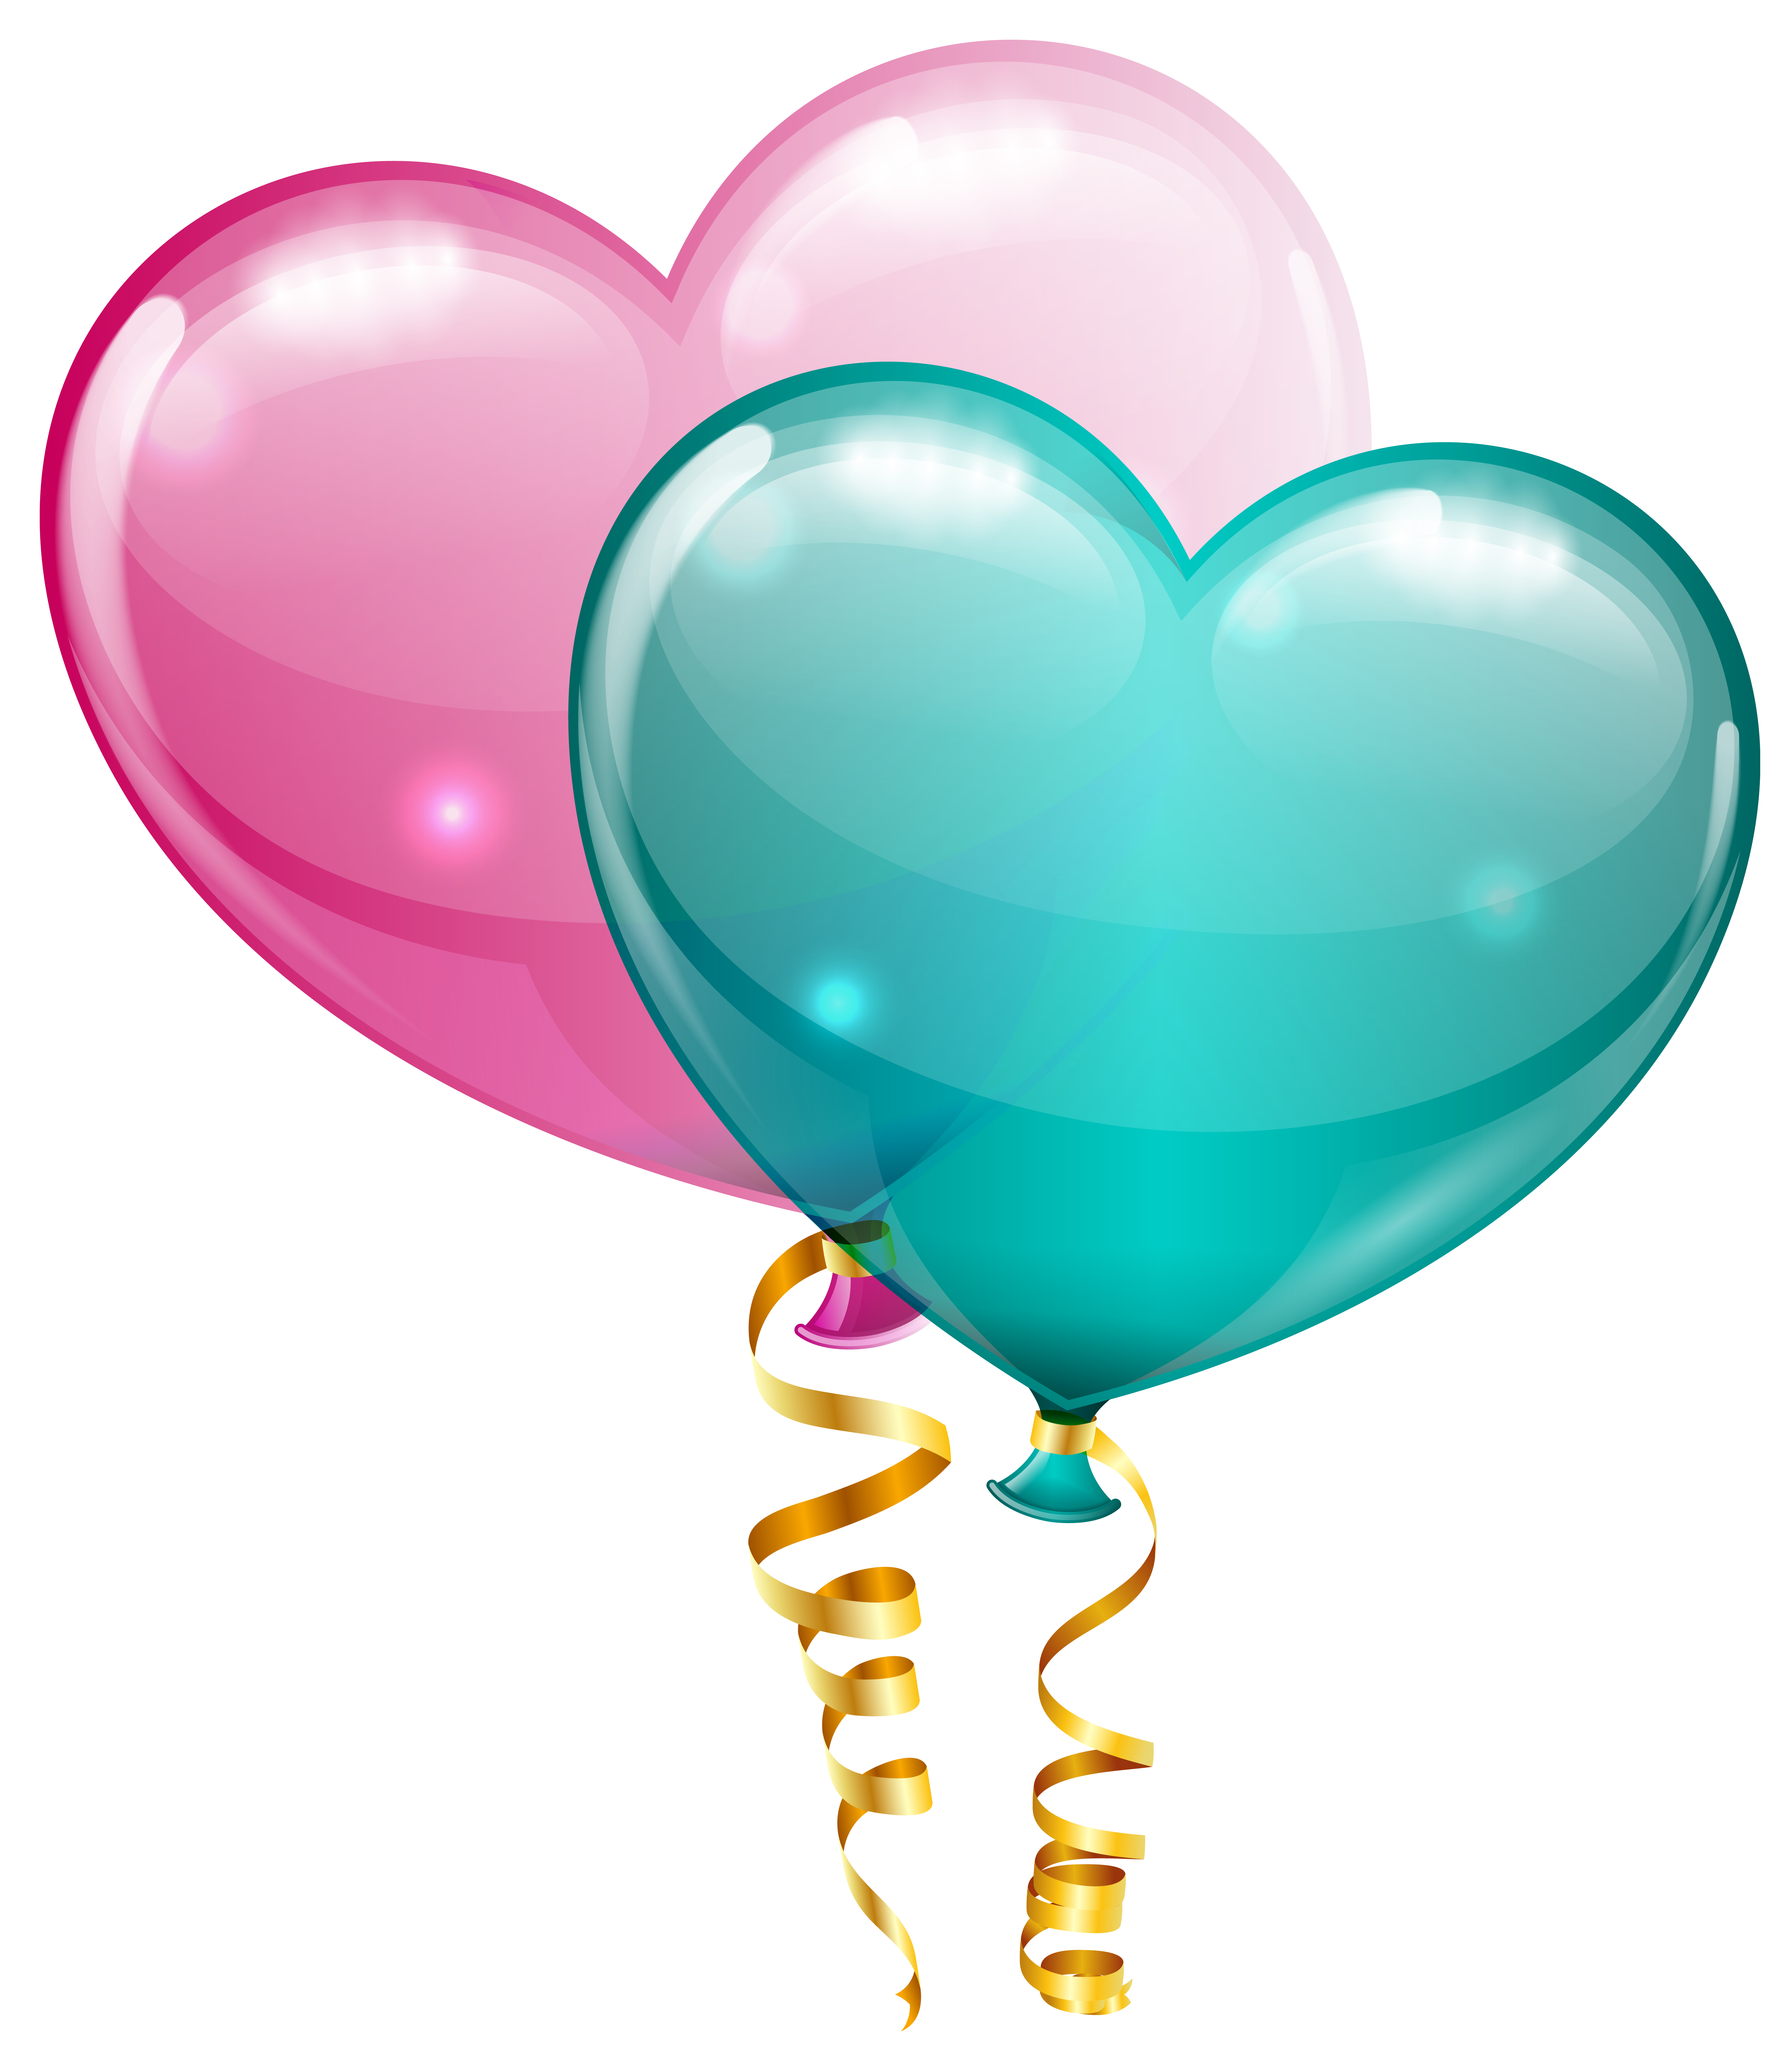 Blue heart clipart transparent banner black and white download Pink and Blue Heart Balloons PNG Clipart Image | Gallery ... banner black and white download